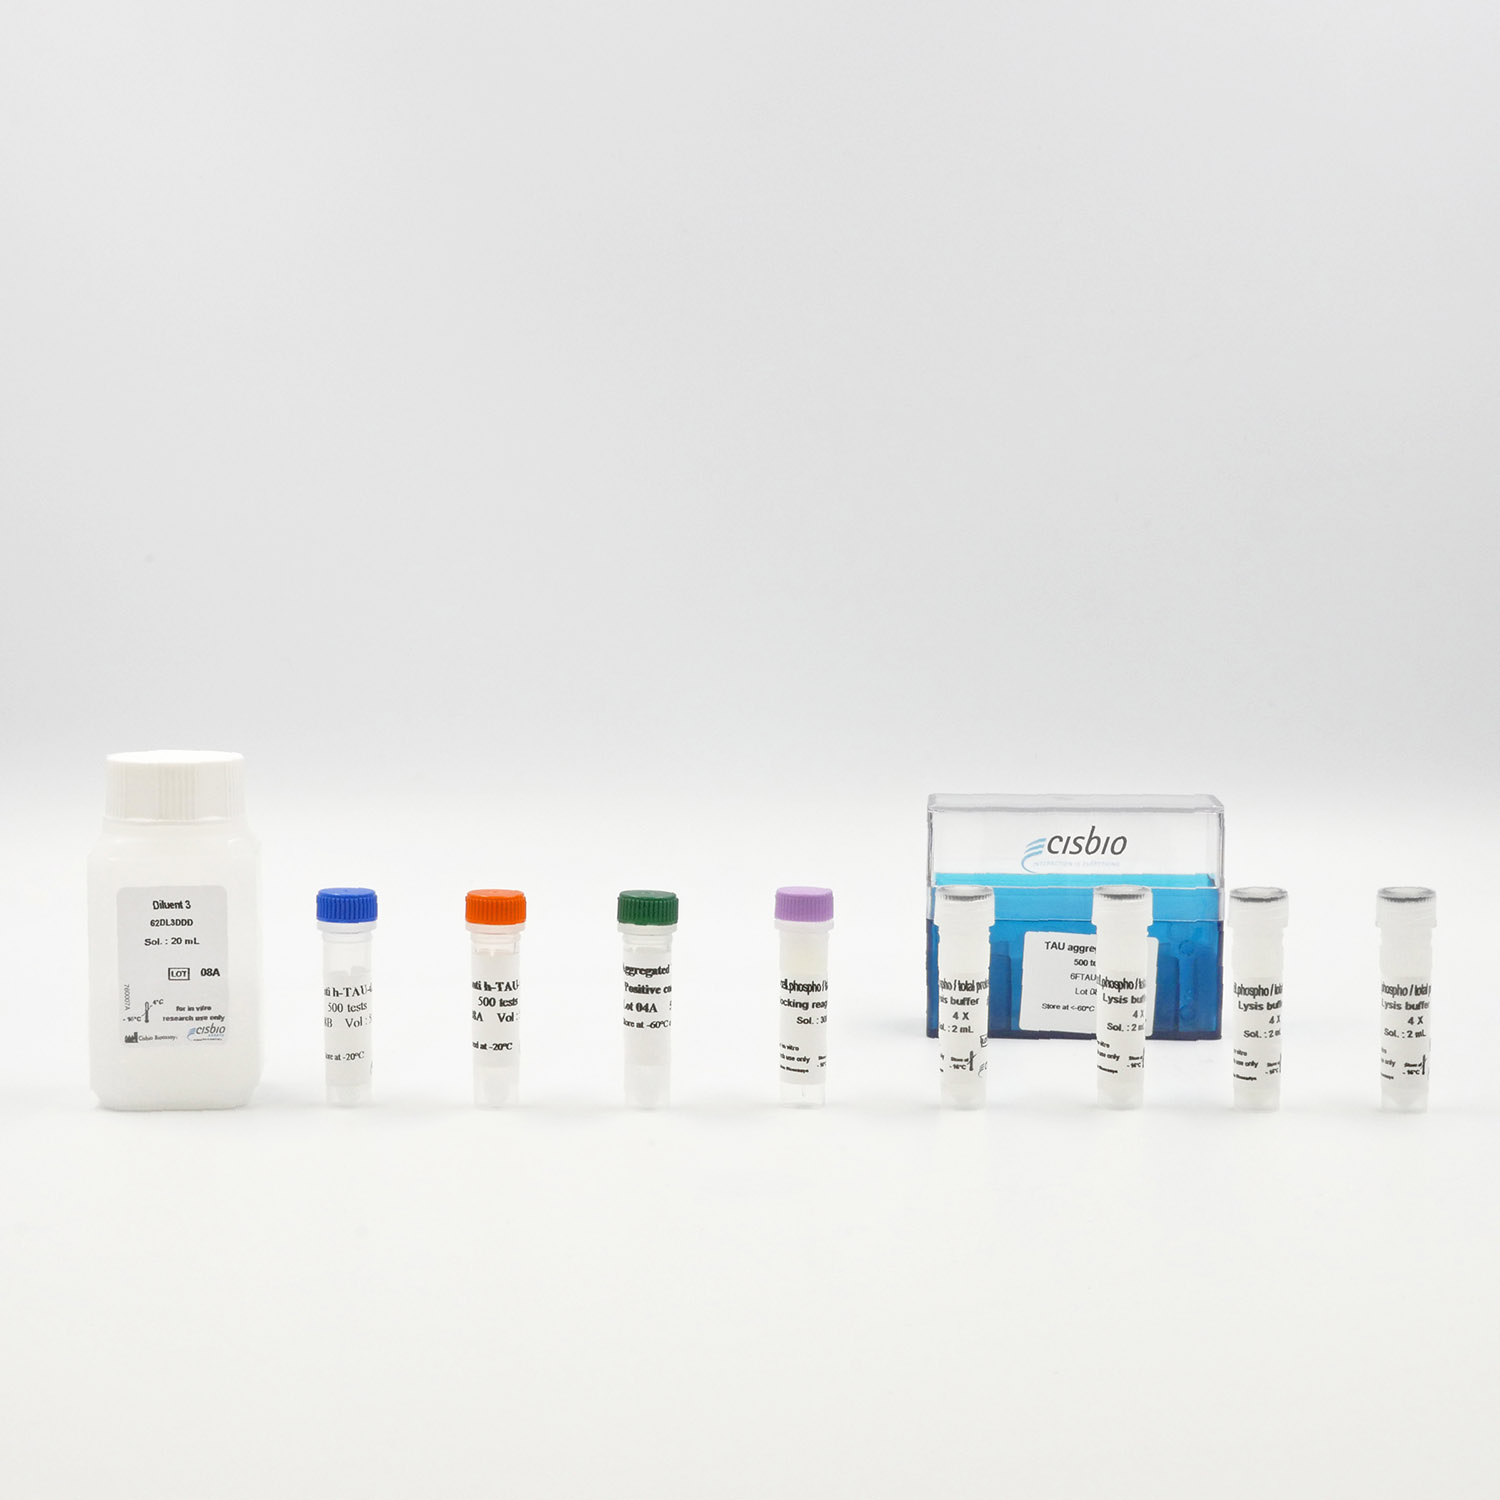 Photography of the Tau aggregation assay kit